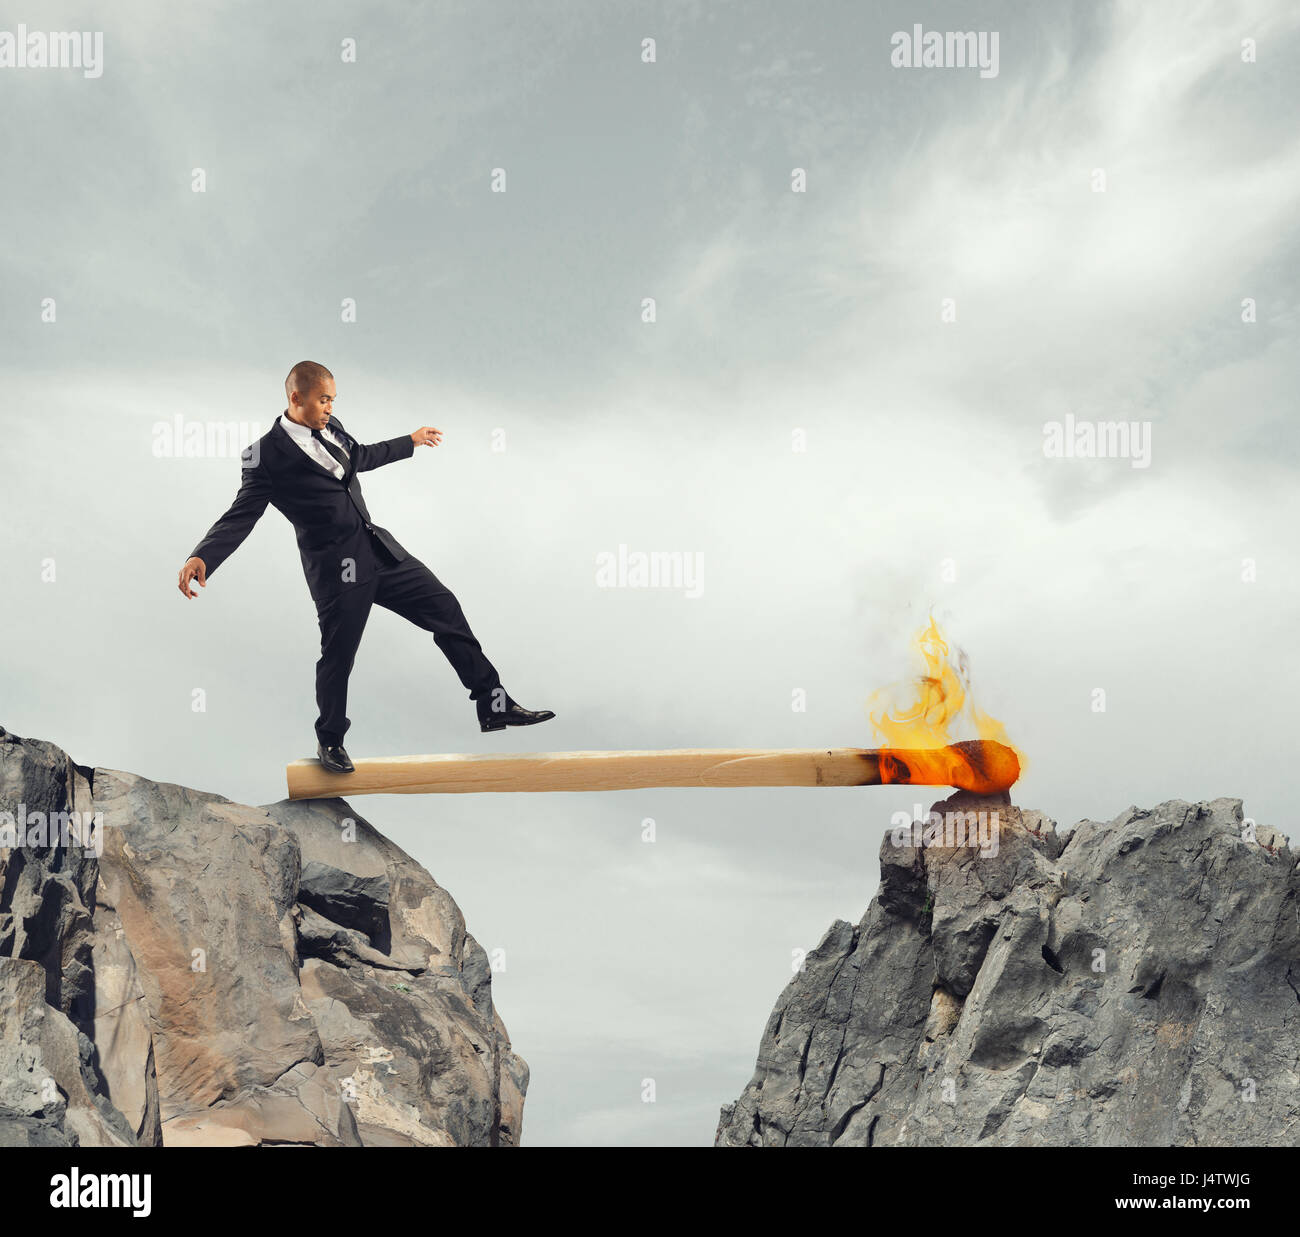 Instability and Fear of obstacles to overcome - Stock Image